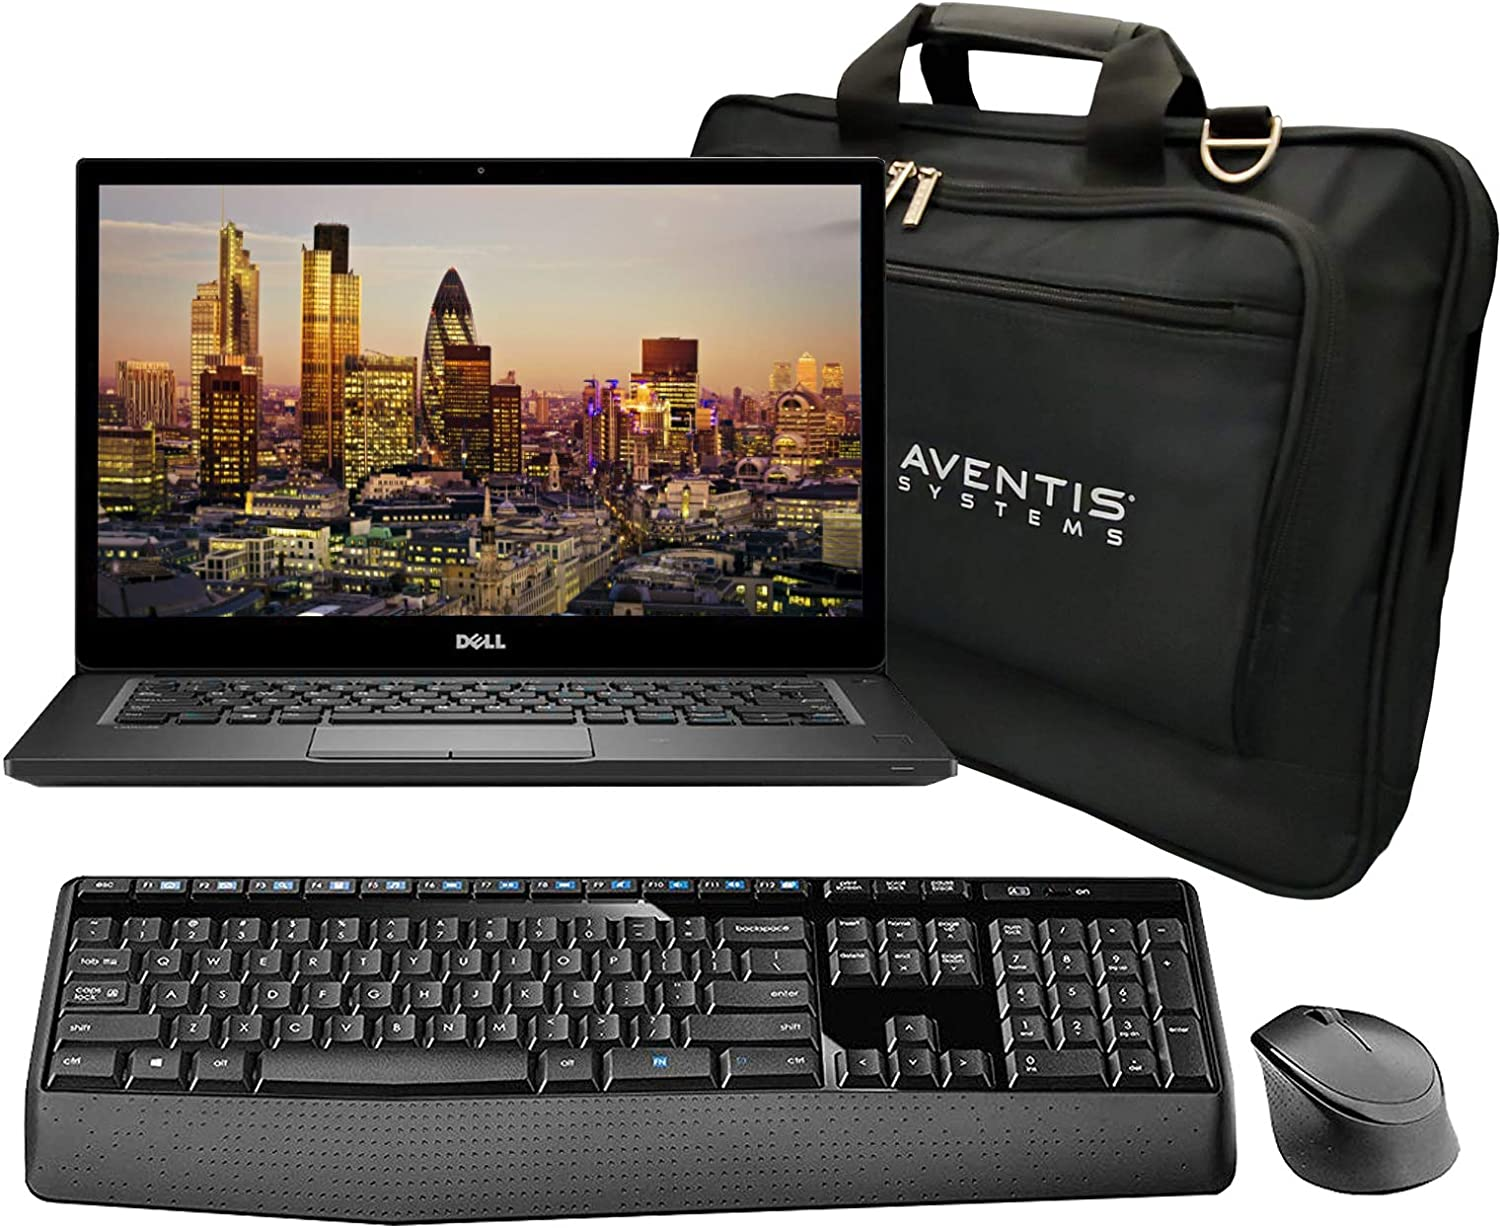 Dell Latitude Business Laptop 7490 Bundle with Bag, Wireless Keyboard and Mouse, 14 Inch Display, Intel i7-8650U Quad Core, 8GB RAM, 256GB NVMe SSD, WiFi, Win 10 Pro (Renewed)